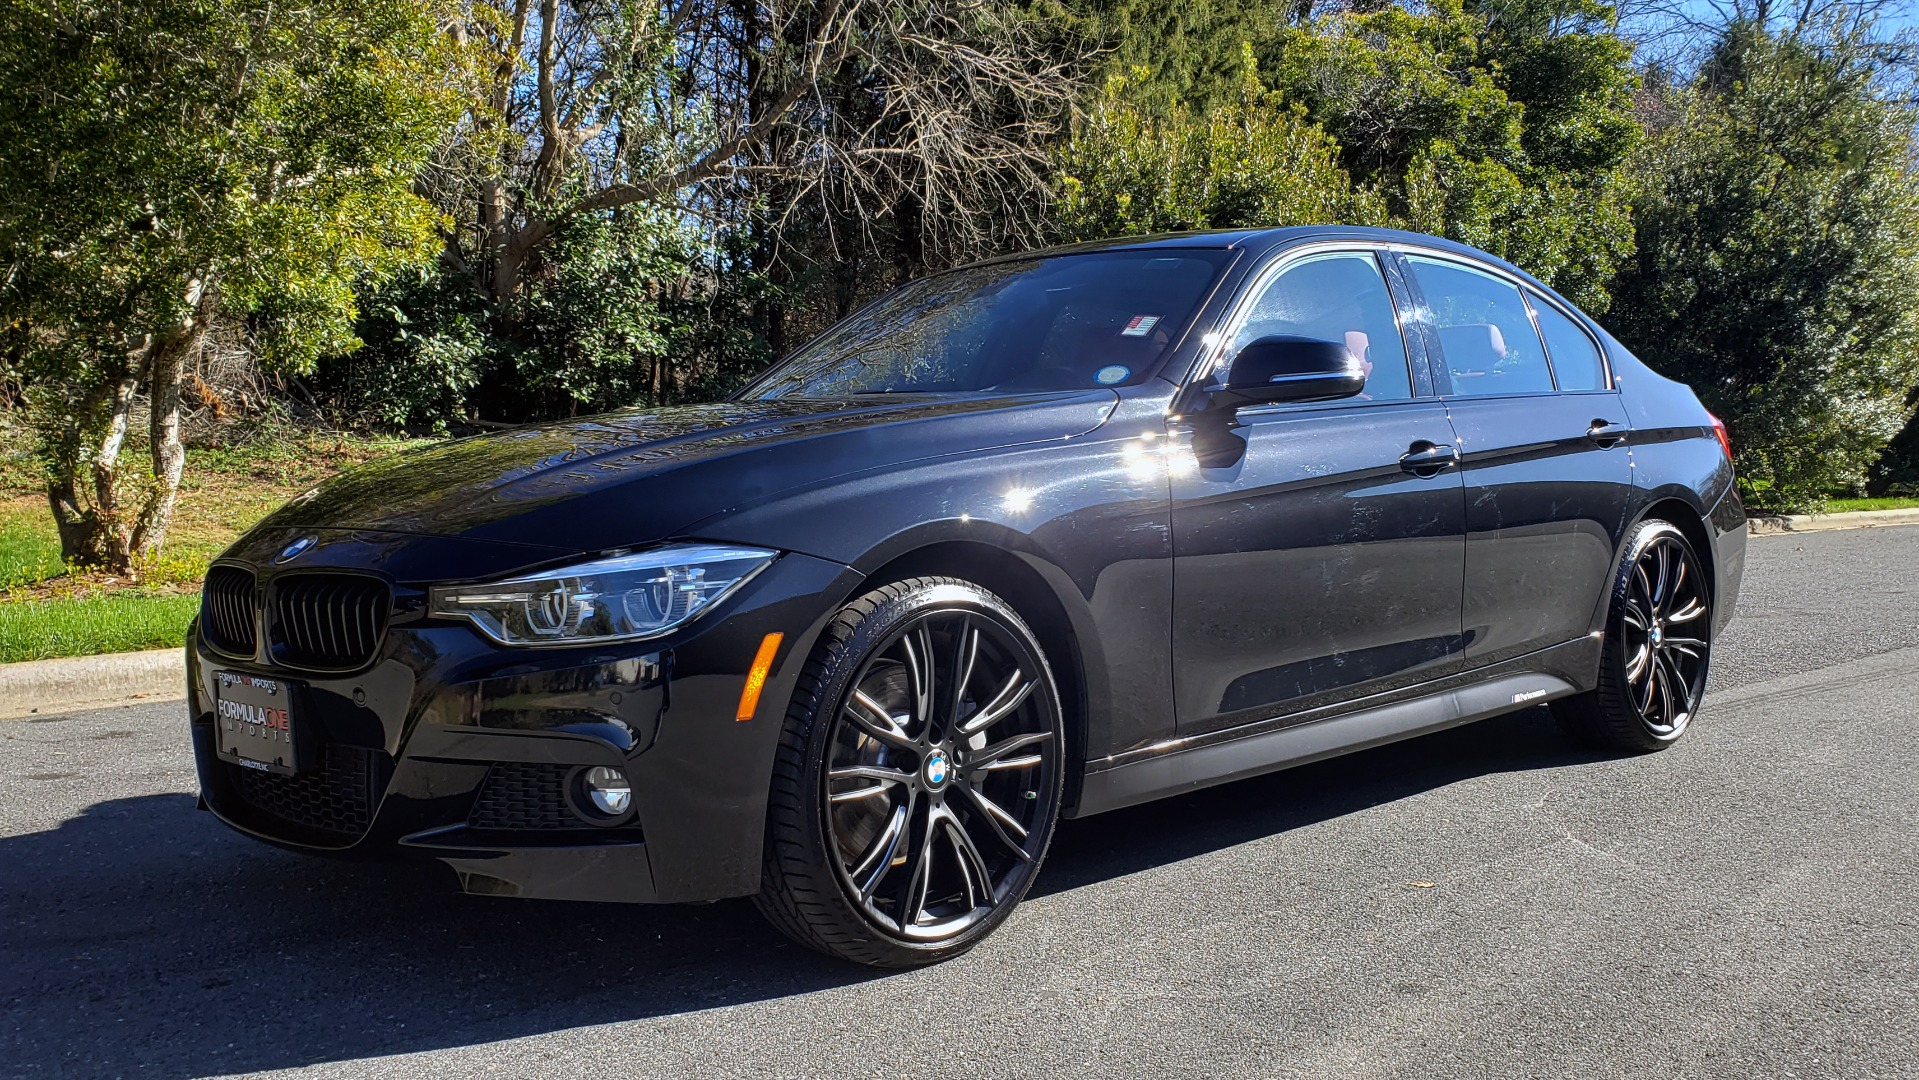 Used 2017 BMW 3 SERIES 330IXDRIVE M-SPORT / PREMIUM / DRVR ASST / CLD WTHR / NAV / APPLE CARPLAY for sale $27,495 at Formula Imports in Charlotte NC 28227 1